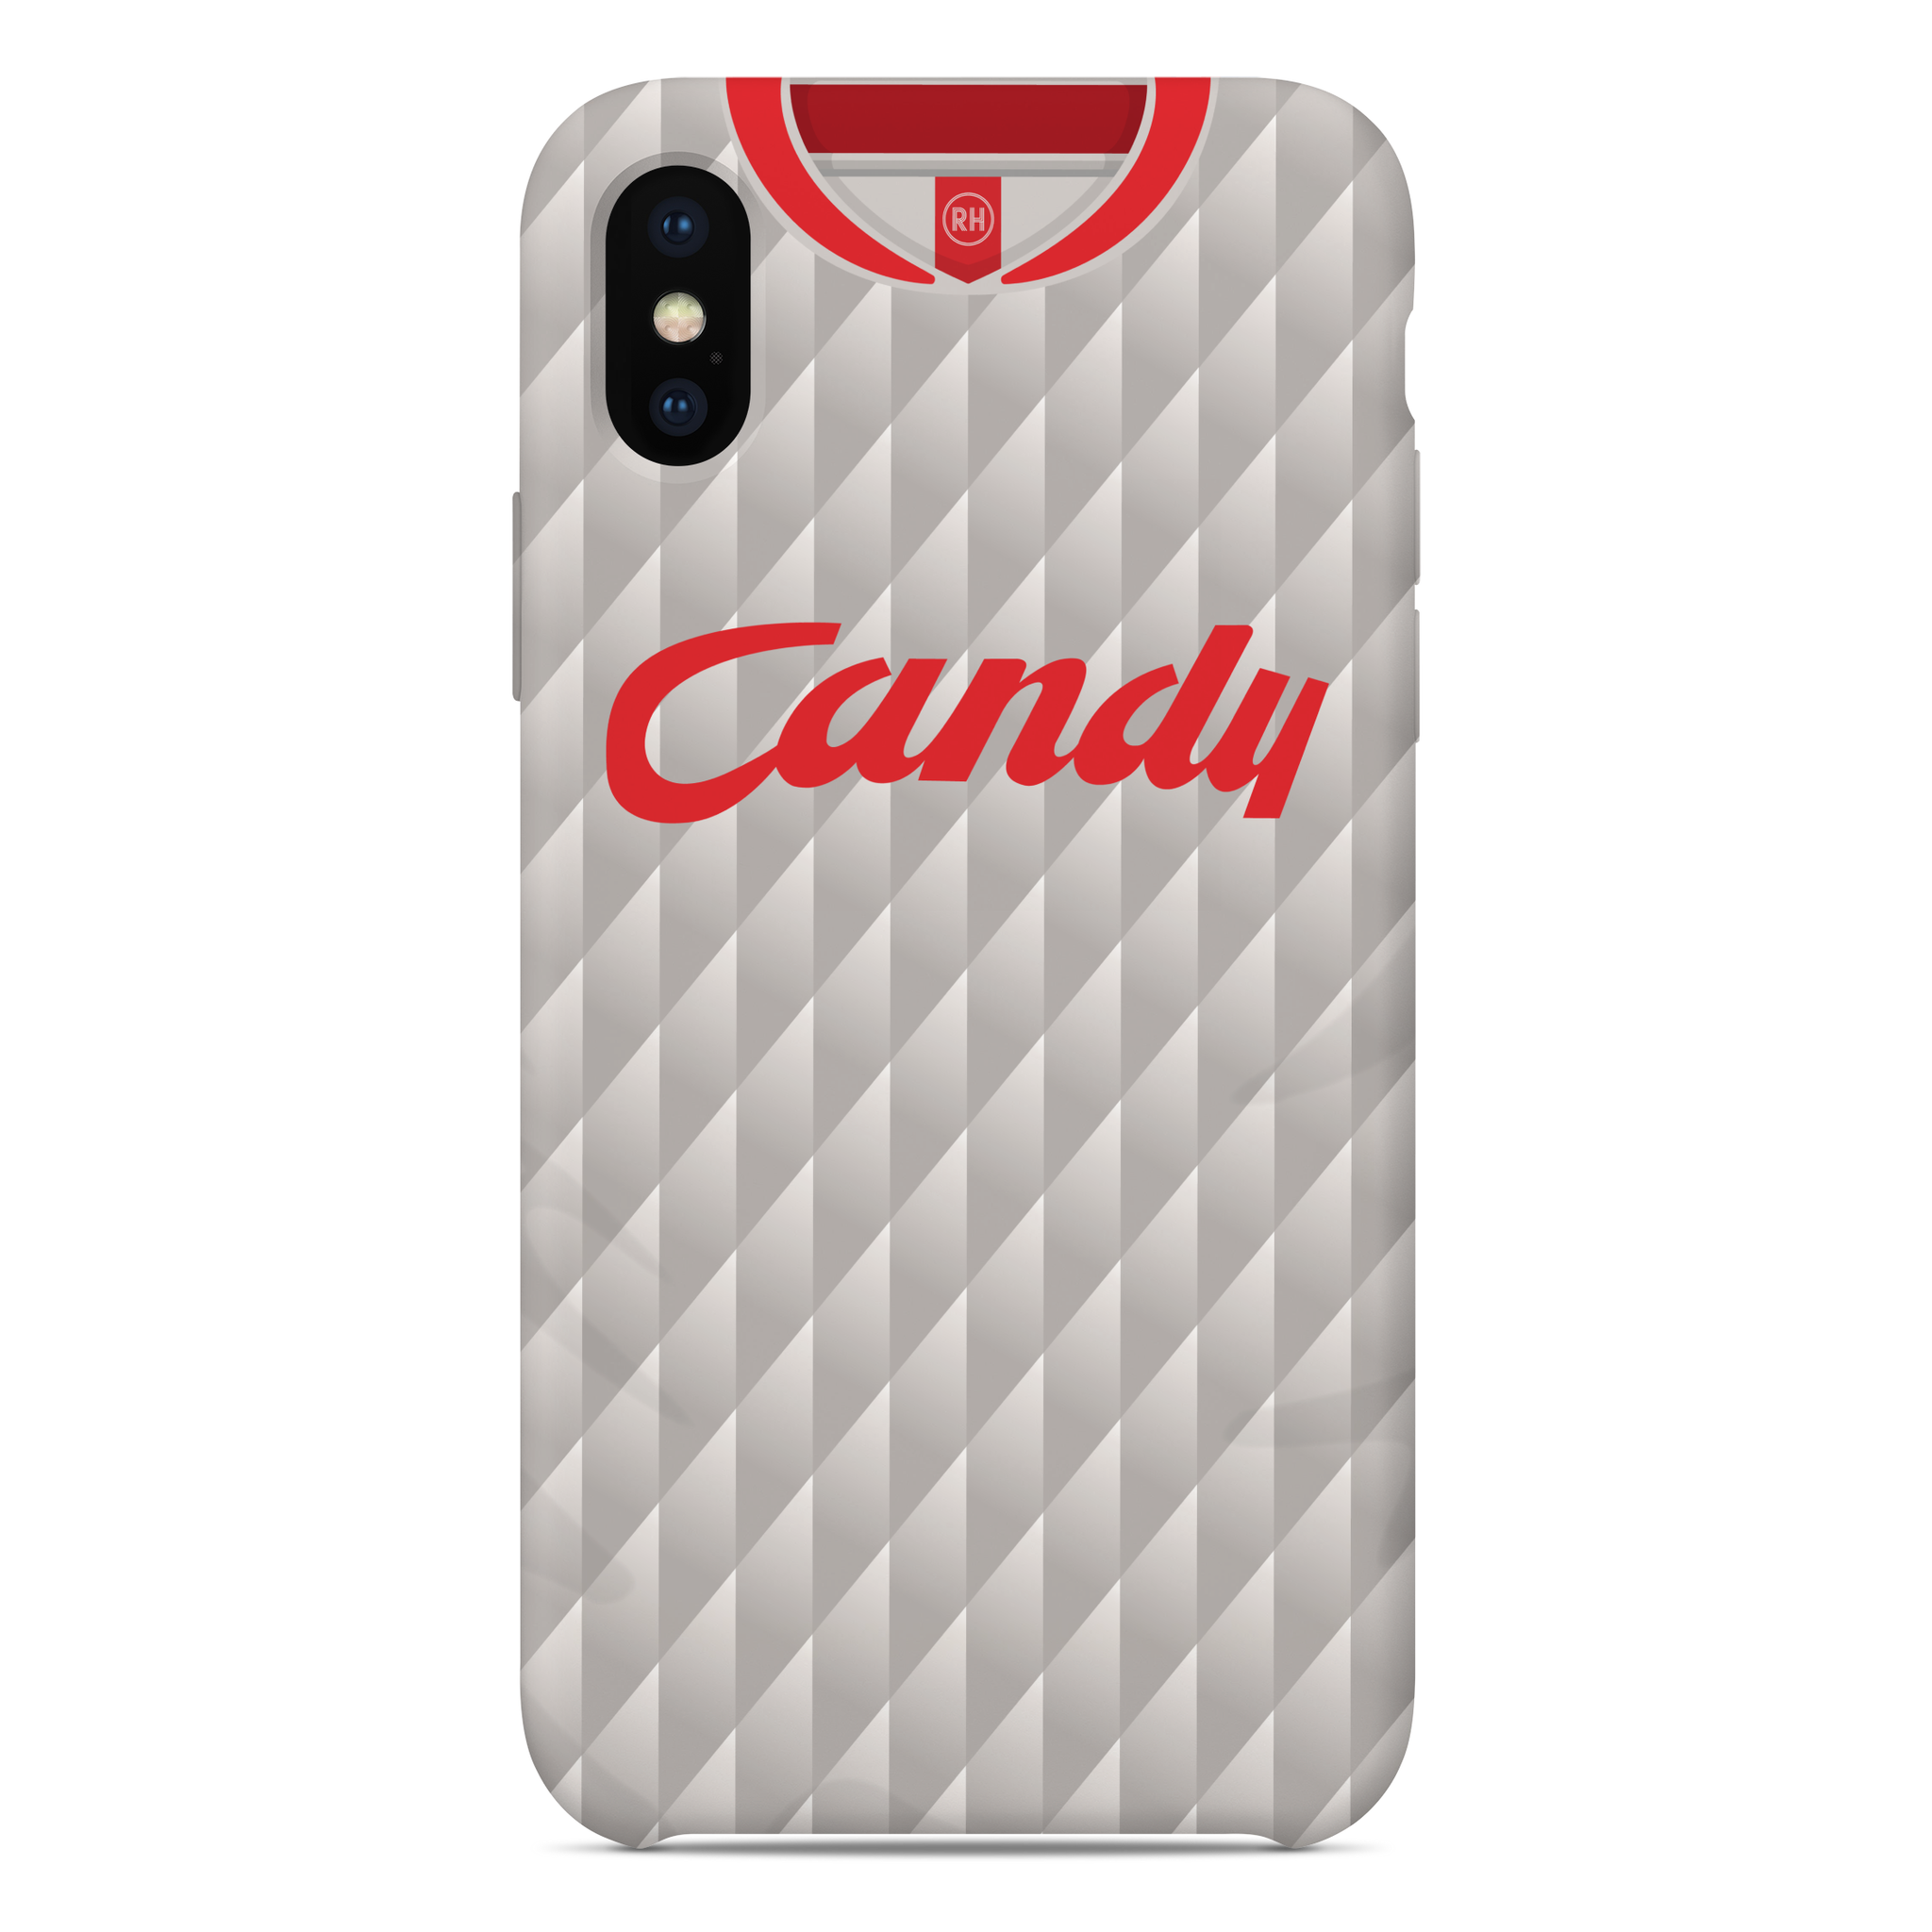 LIVERPOOL INSPIRED PHONE CASE 1989 AWAY